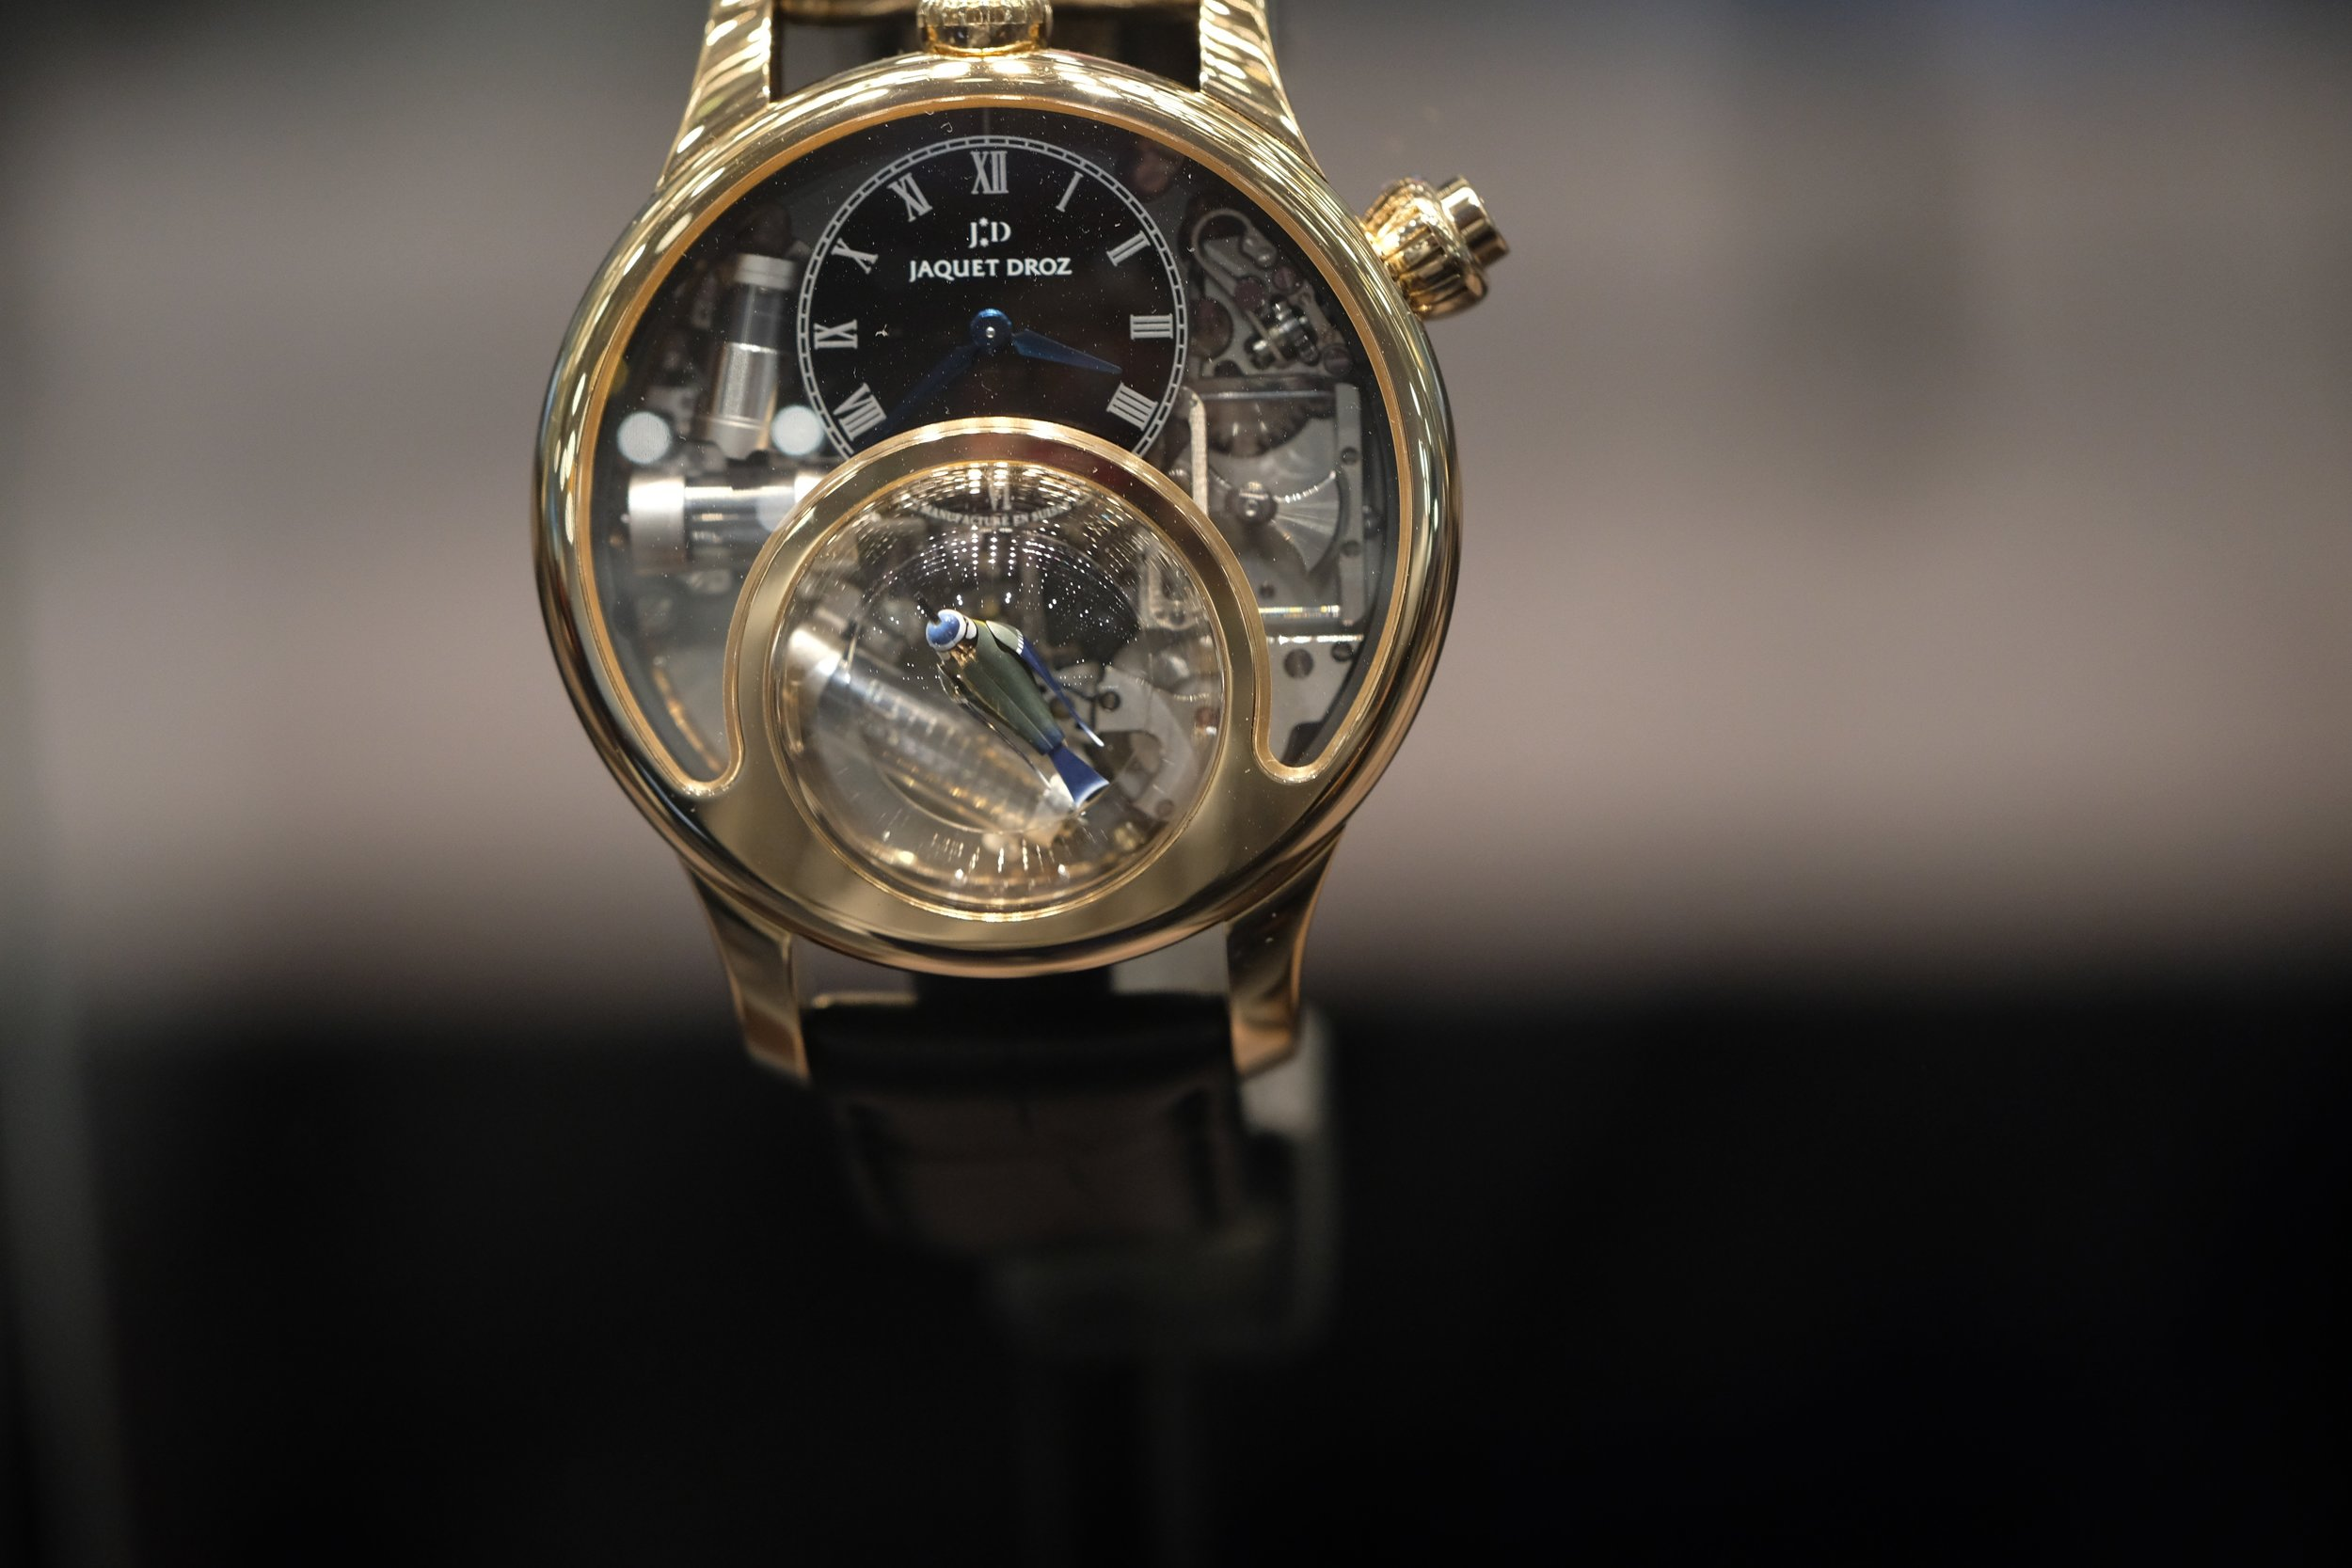 PHOTO COURTESY OF THE RIVERDALE REVIEW   JAQUET DROZ CHARMING BIRD AUTOMATON